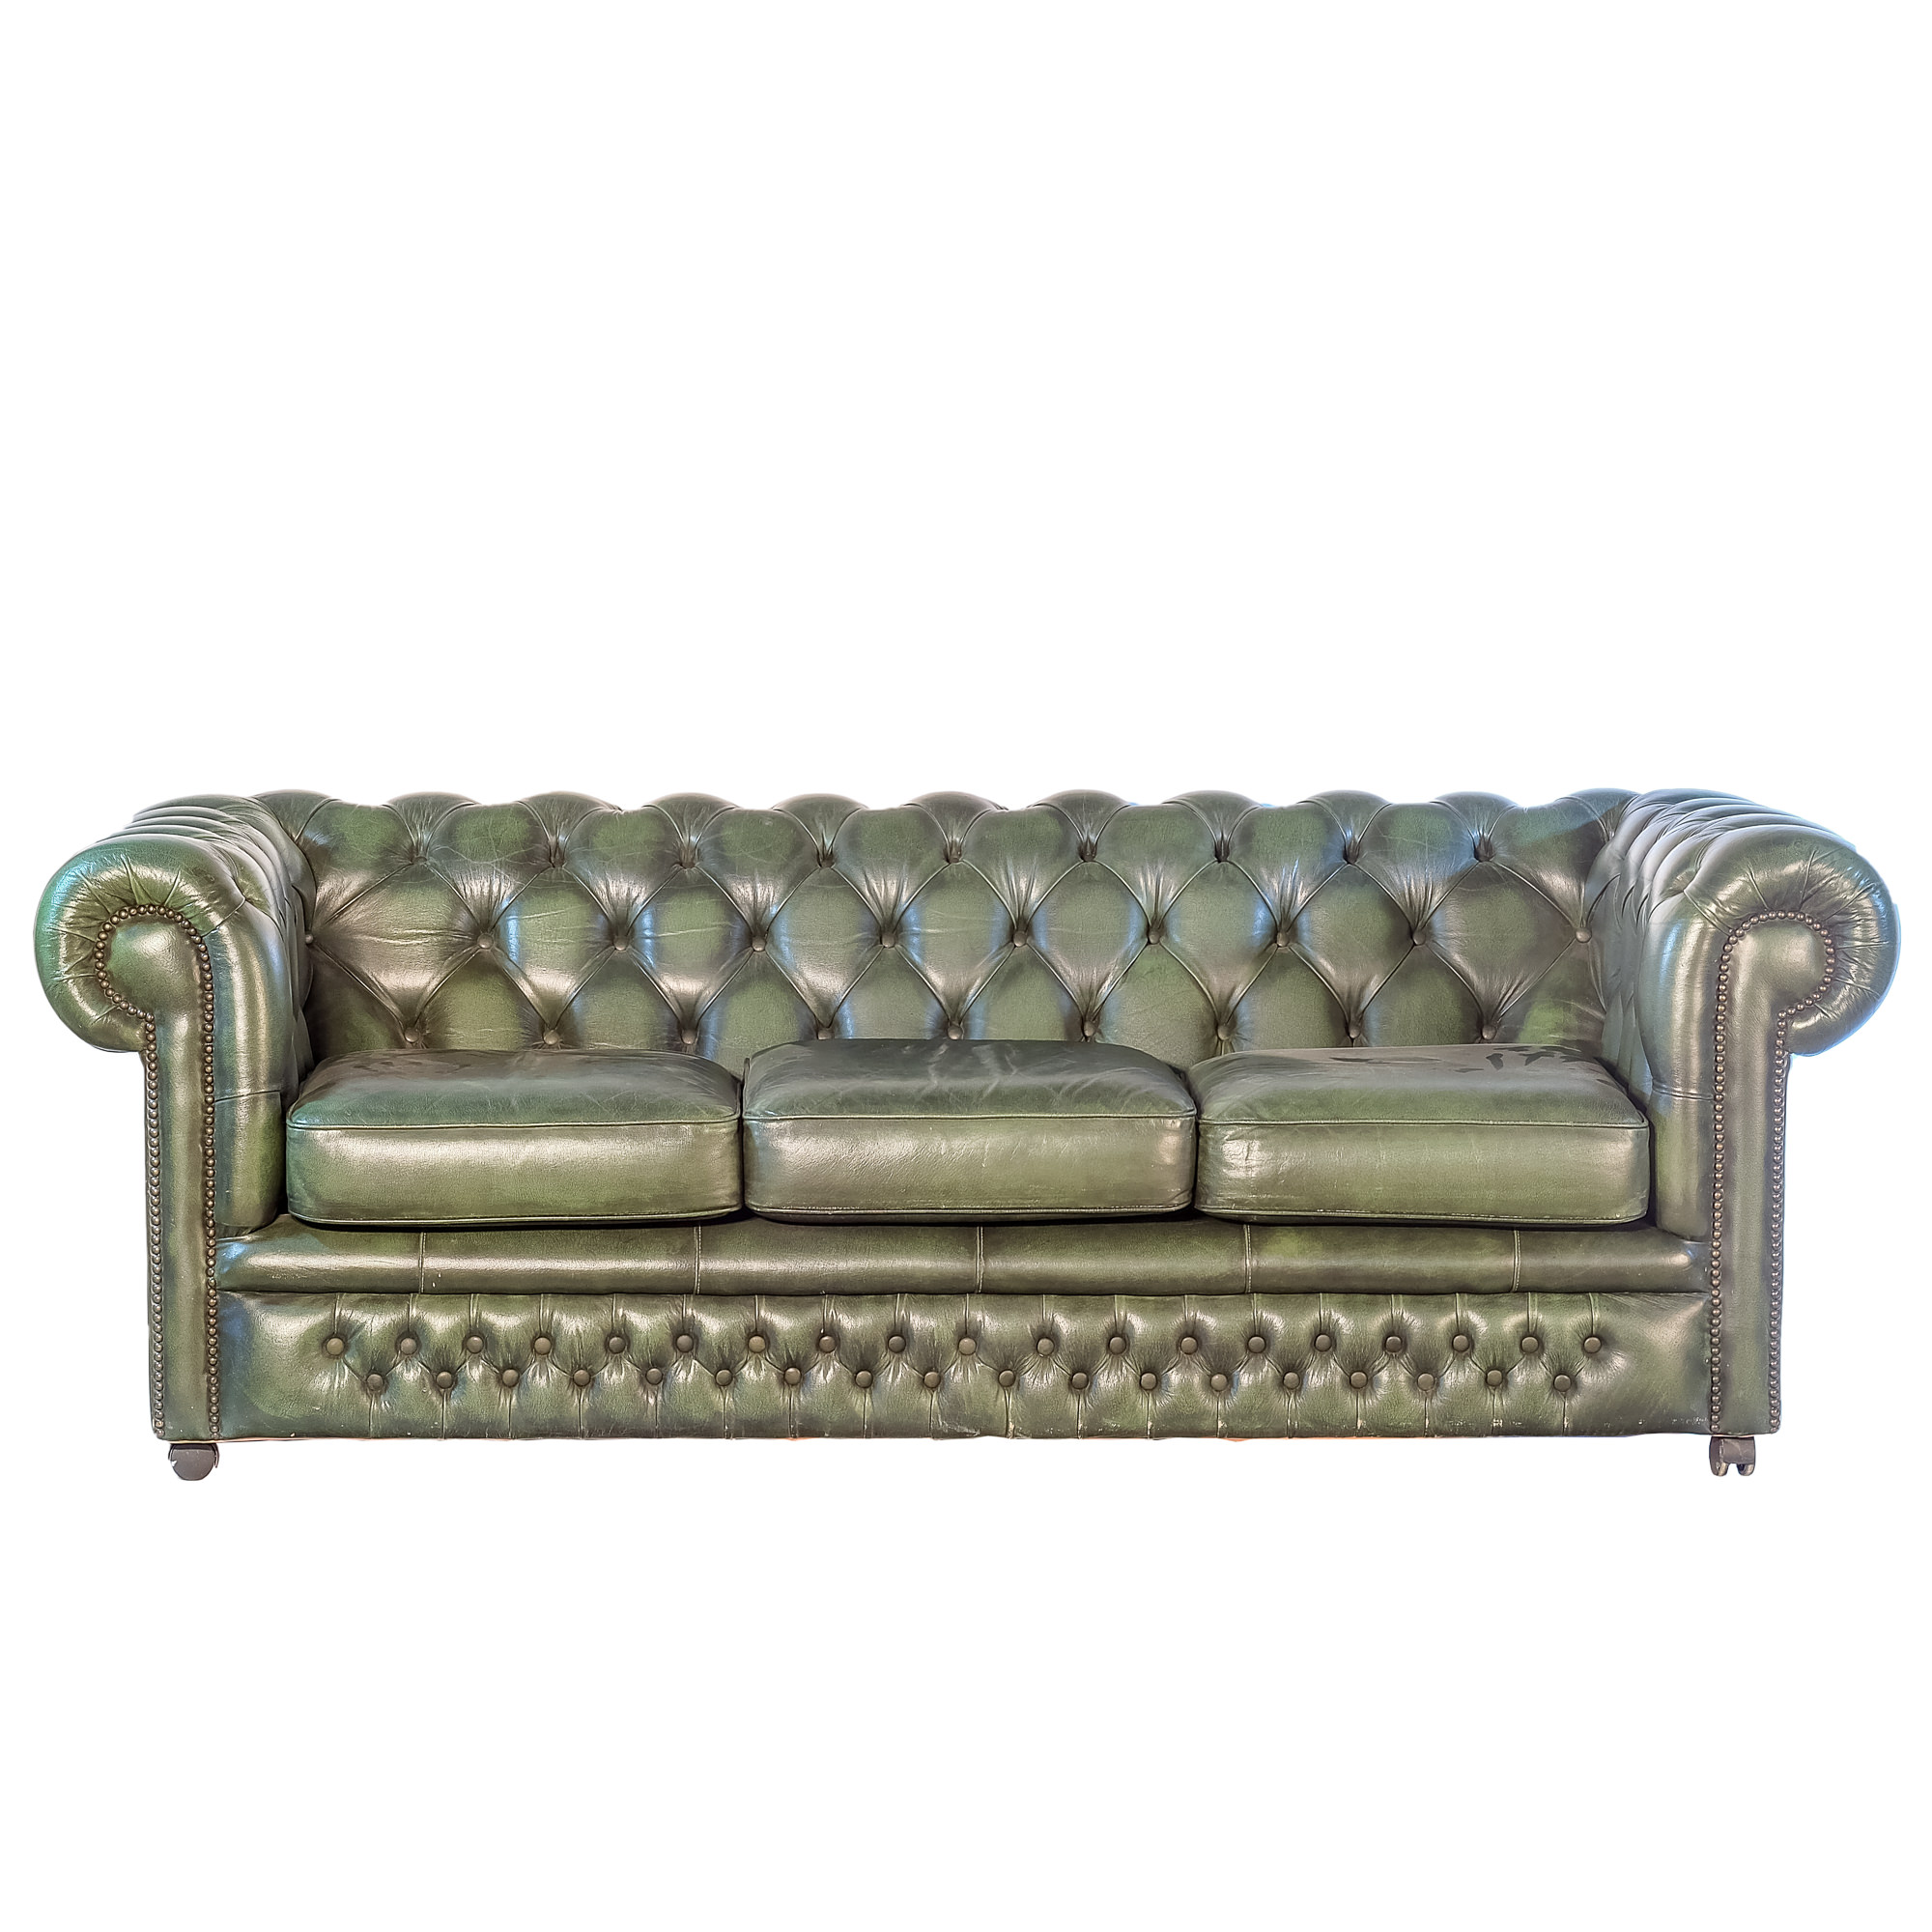 'Gascoigne Green Leather Chesterfield Sofa Late 20th Century '